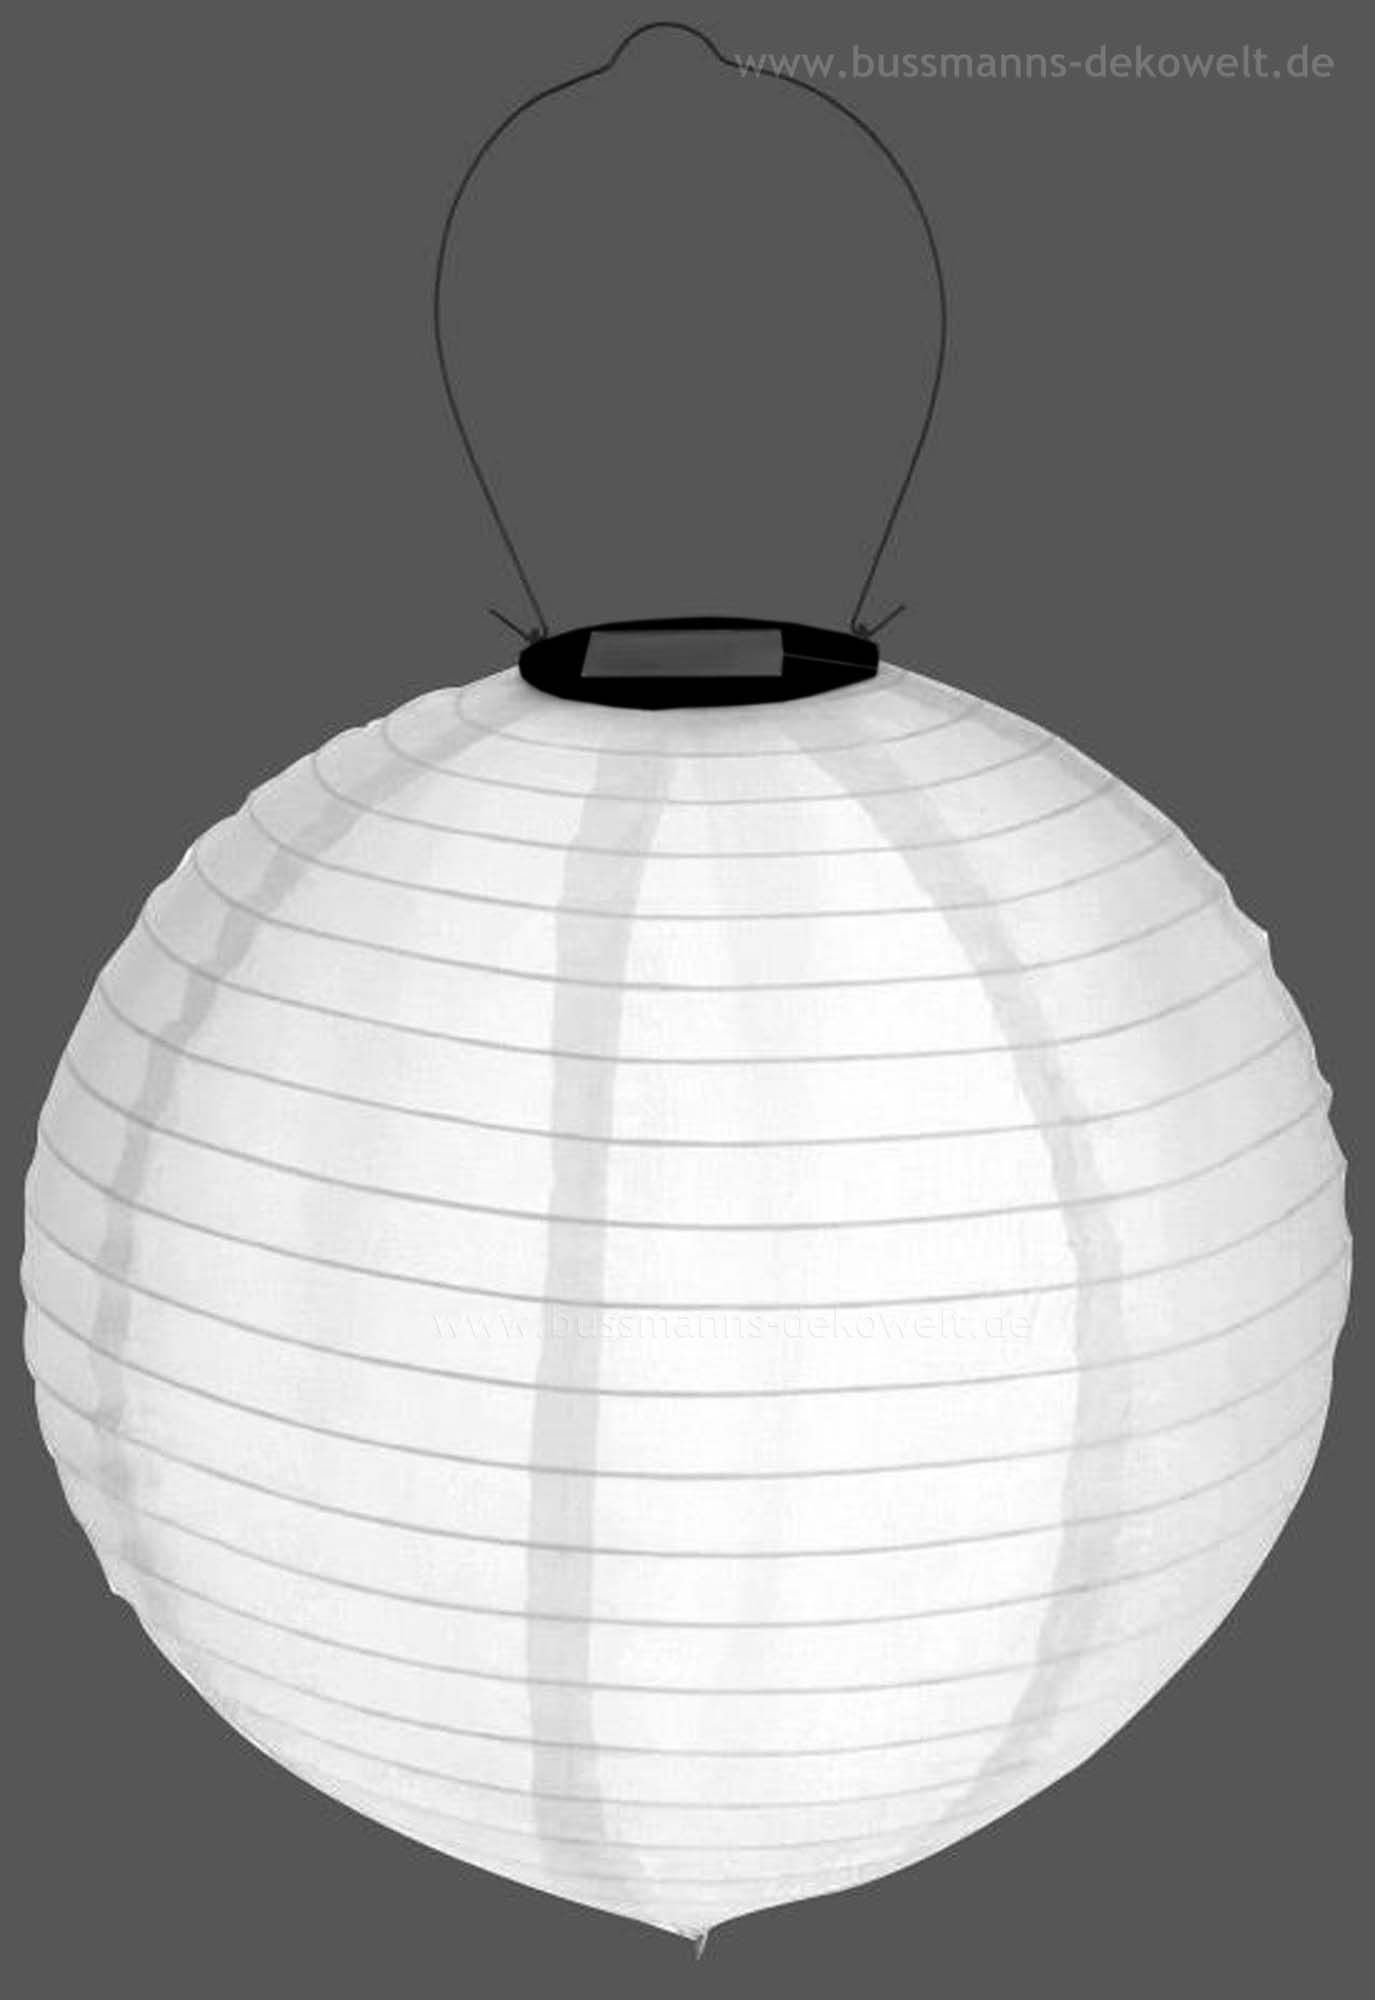 led solar lampion wei rund 30 cm lampions solarlampion ebay. Black Bedroom Furniture Sets. Home Design Ideas